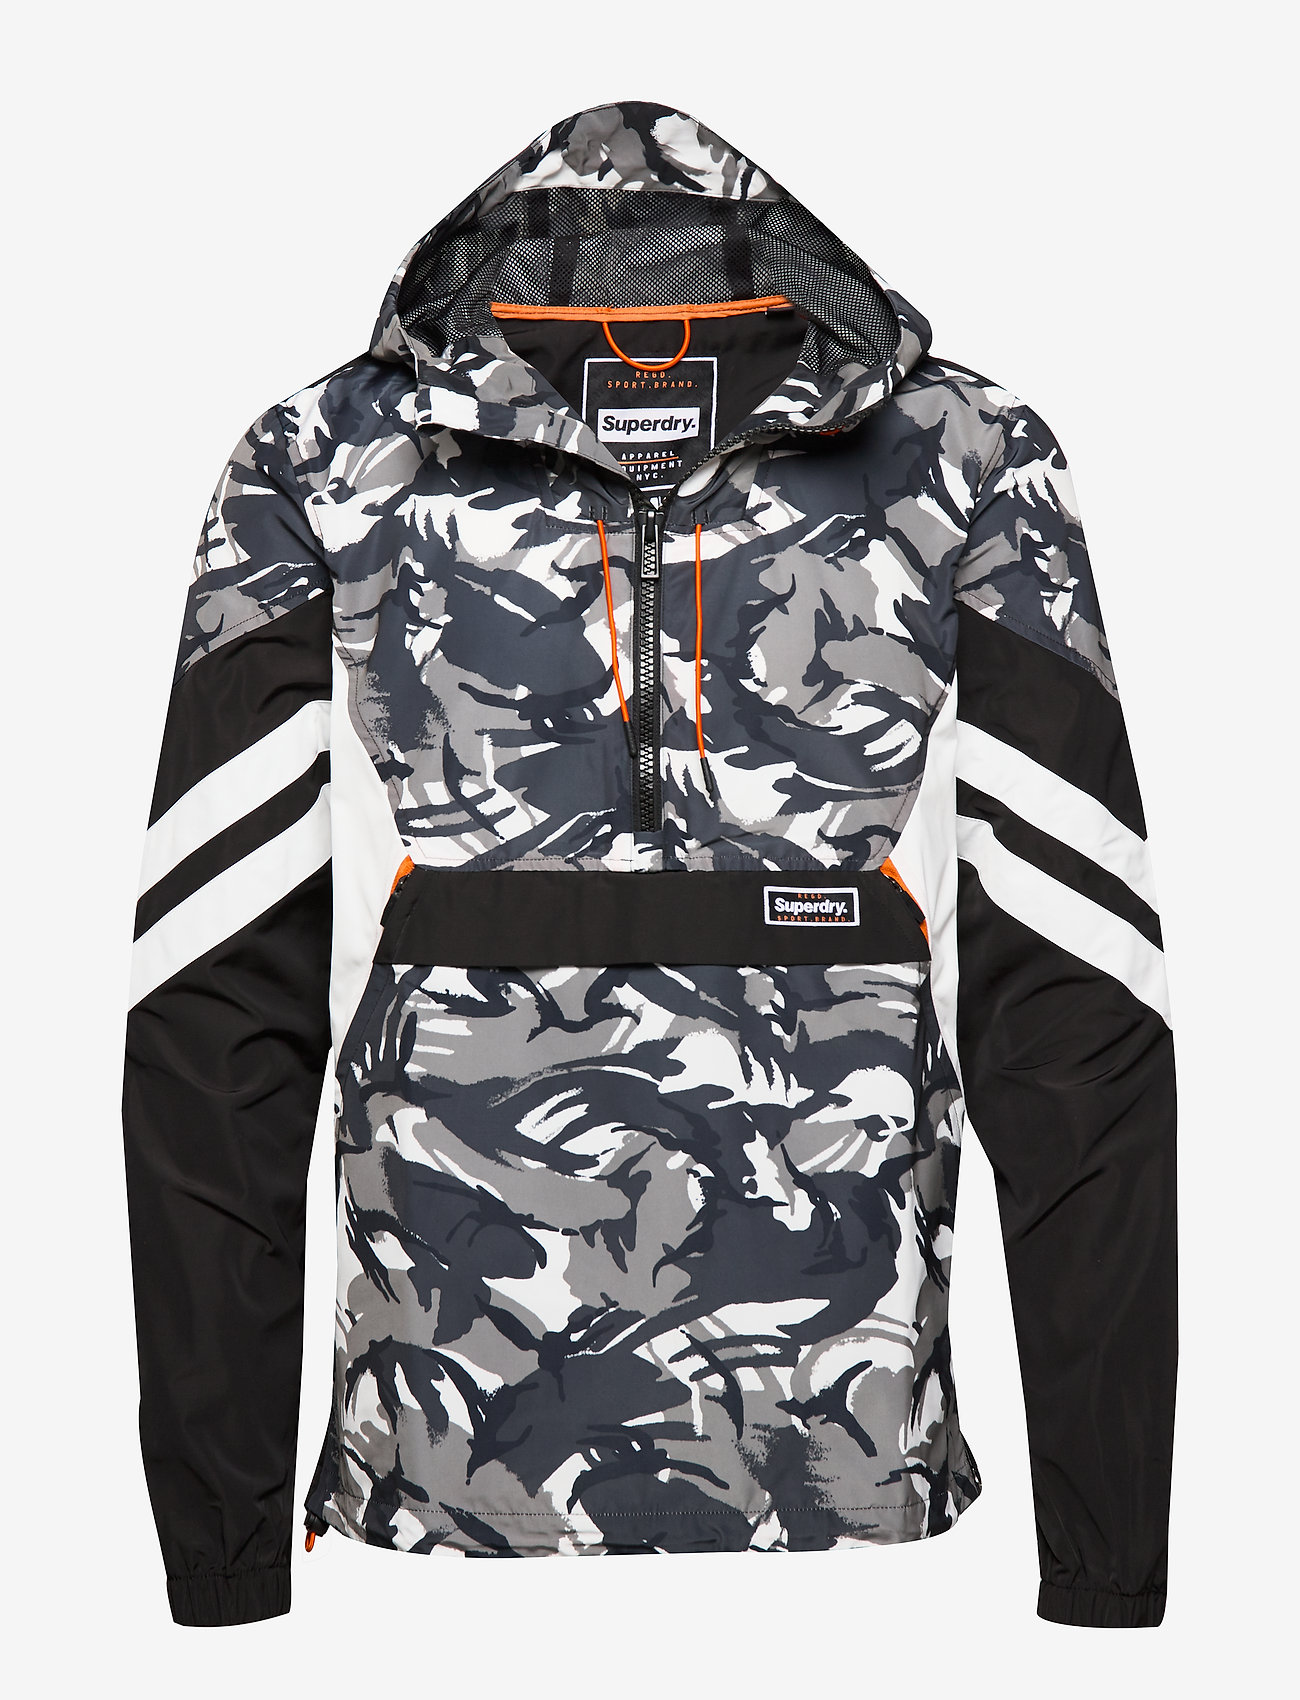 New Mens Superdry Mens Jared Overhead Jacket Camo